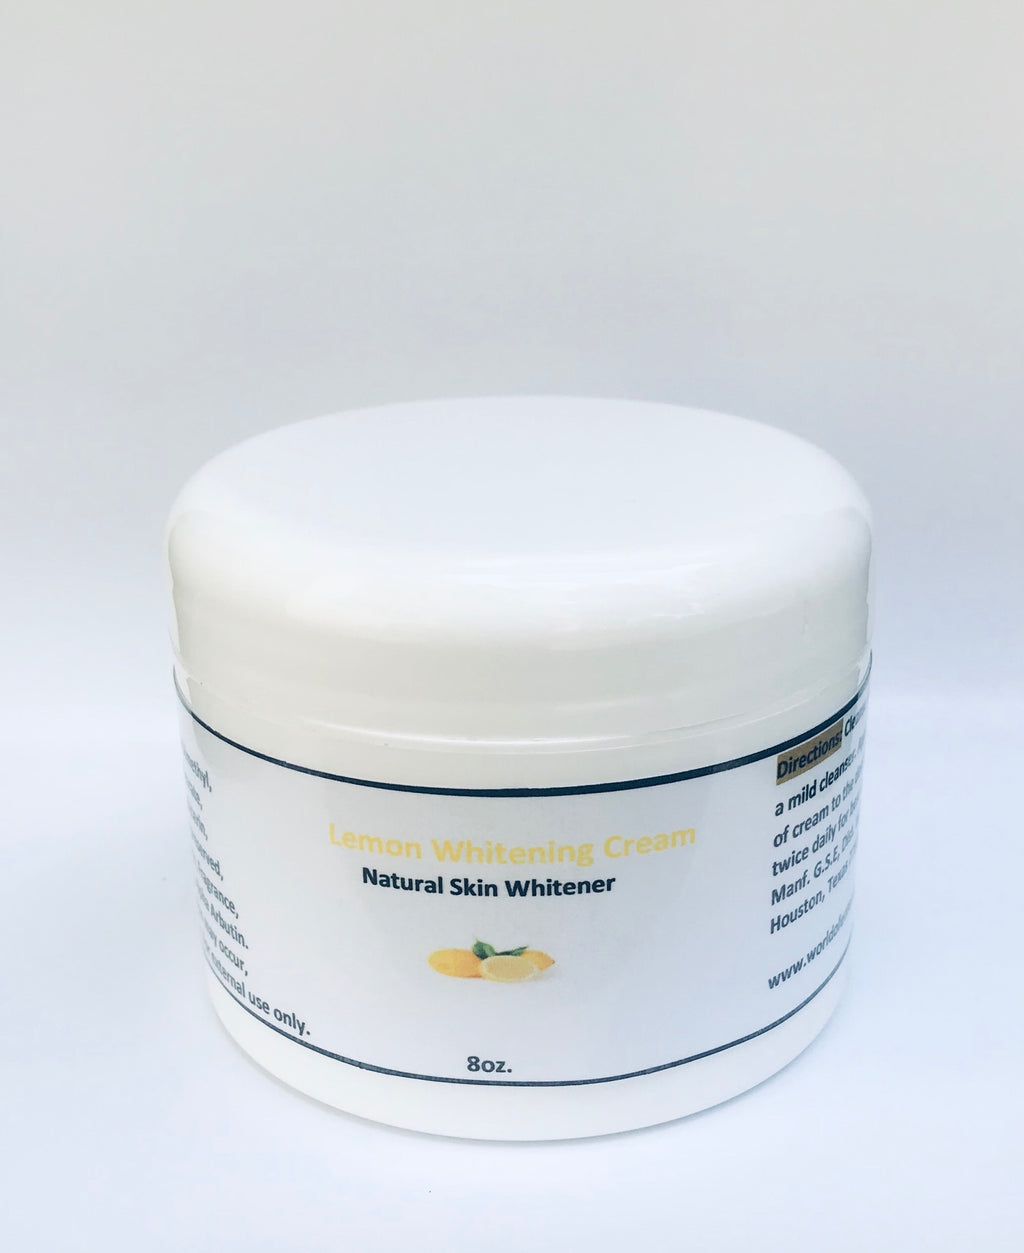 Lemon whitening cream